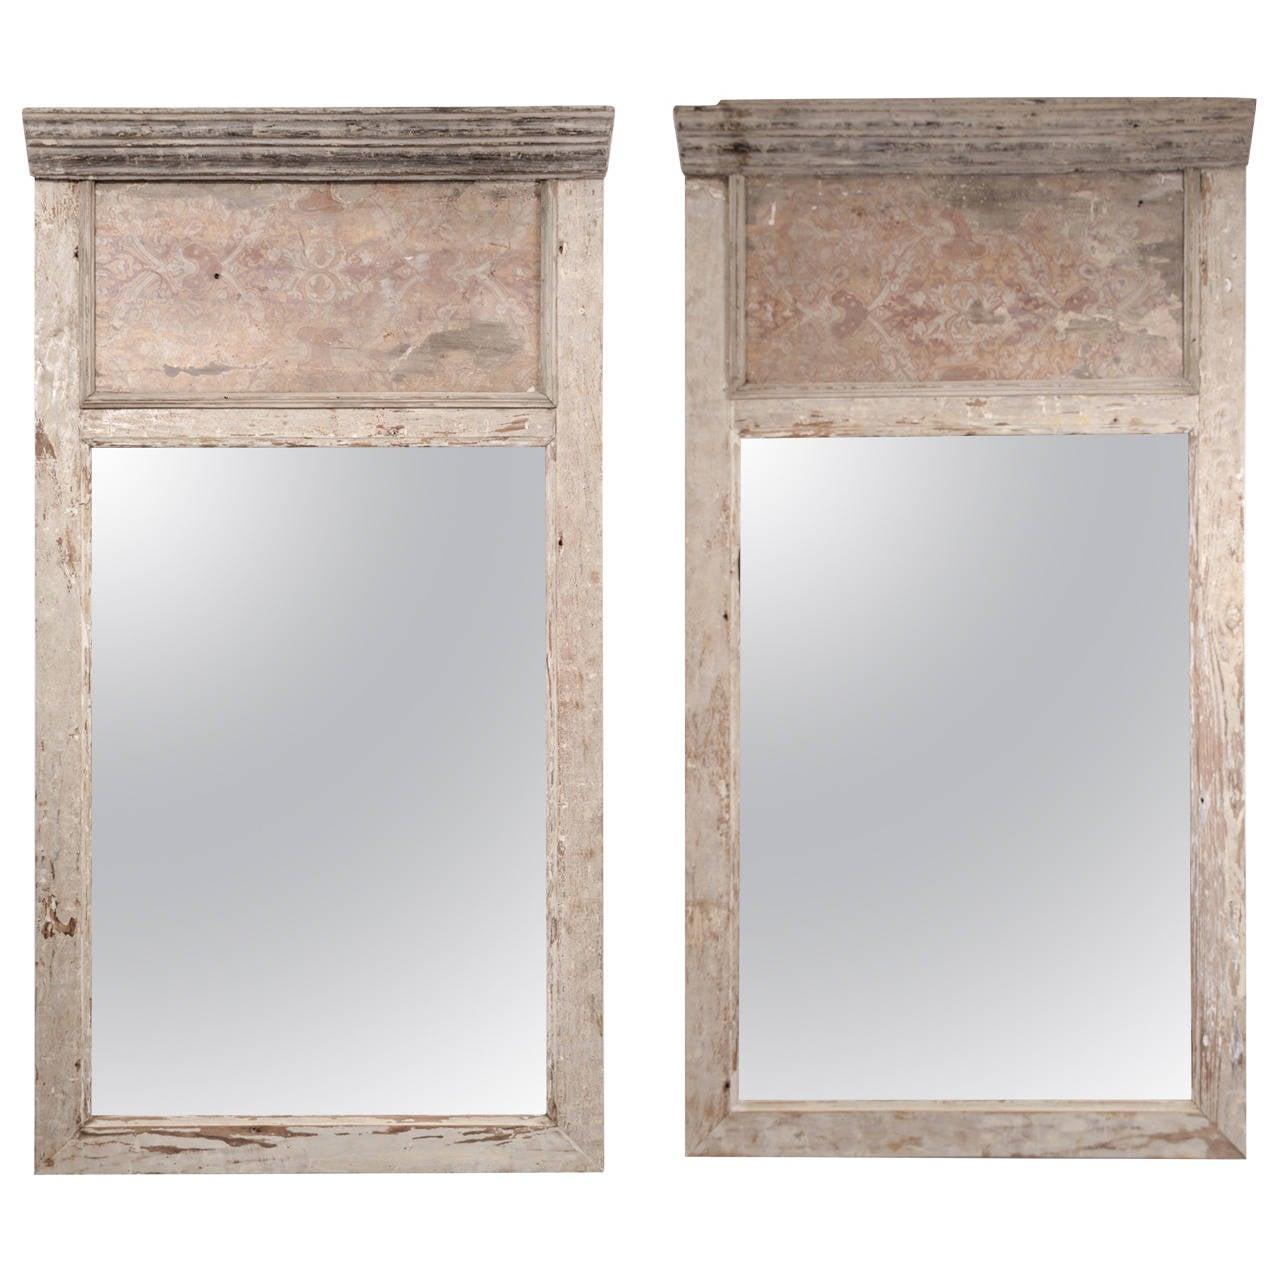 Pair of Large 17th Century Architectural Paneled Frames as Trumeau Style Mirror